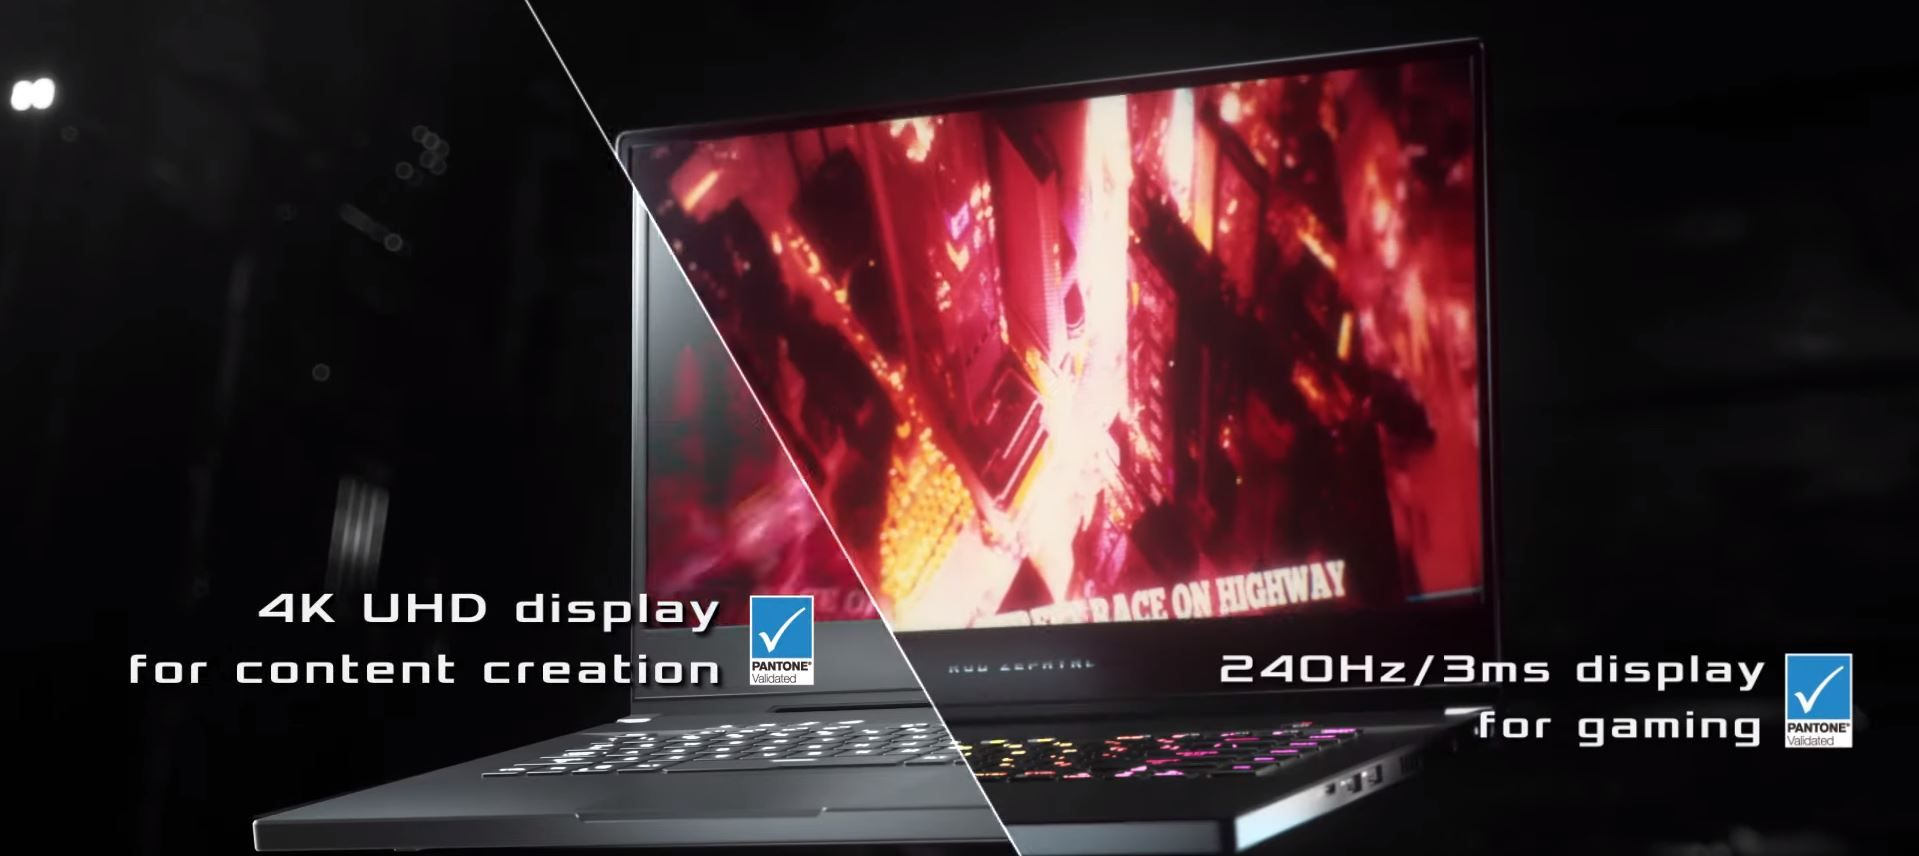 CGI of laptop showing 4k display